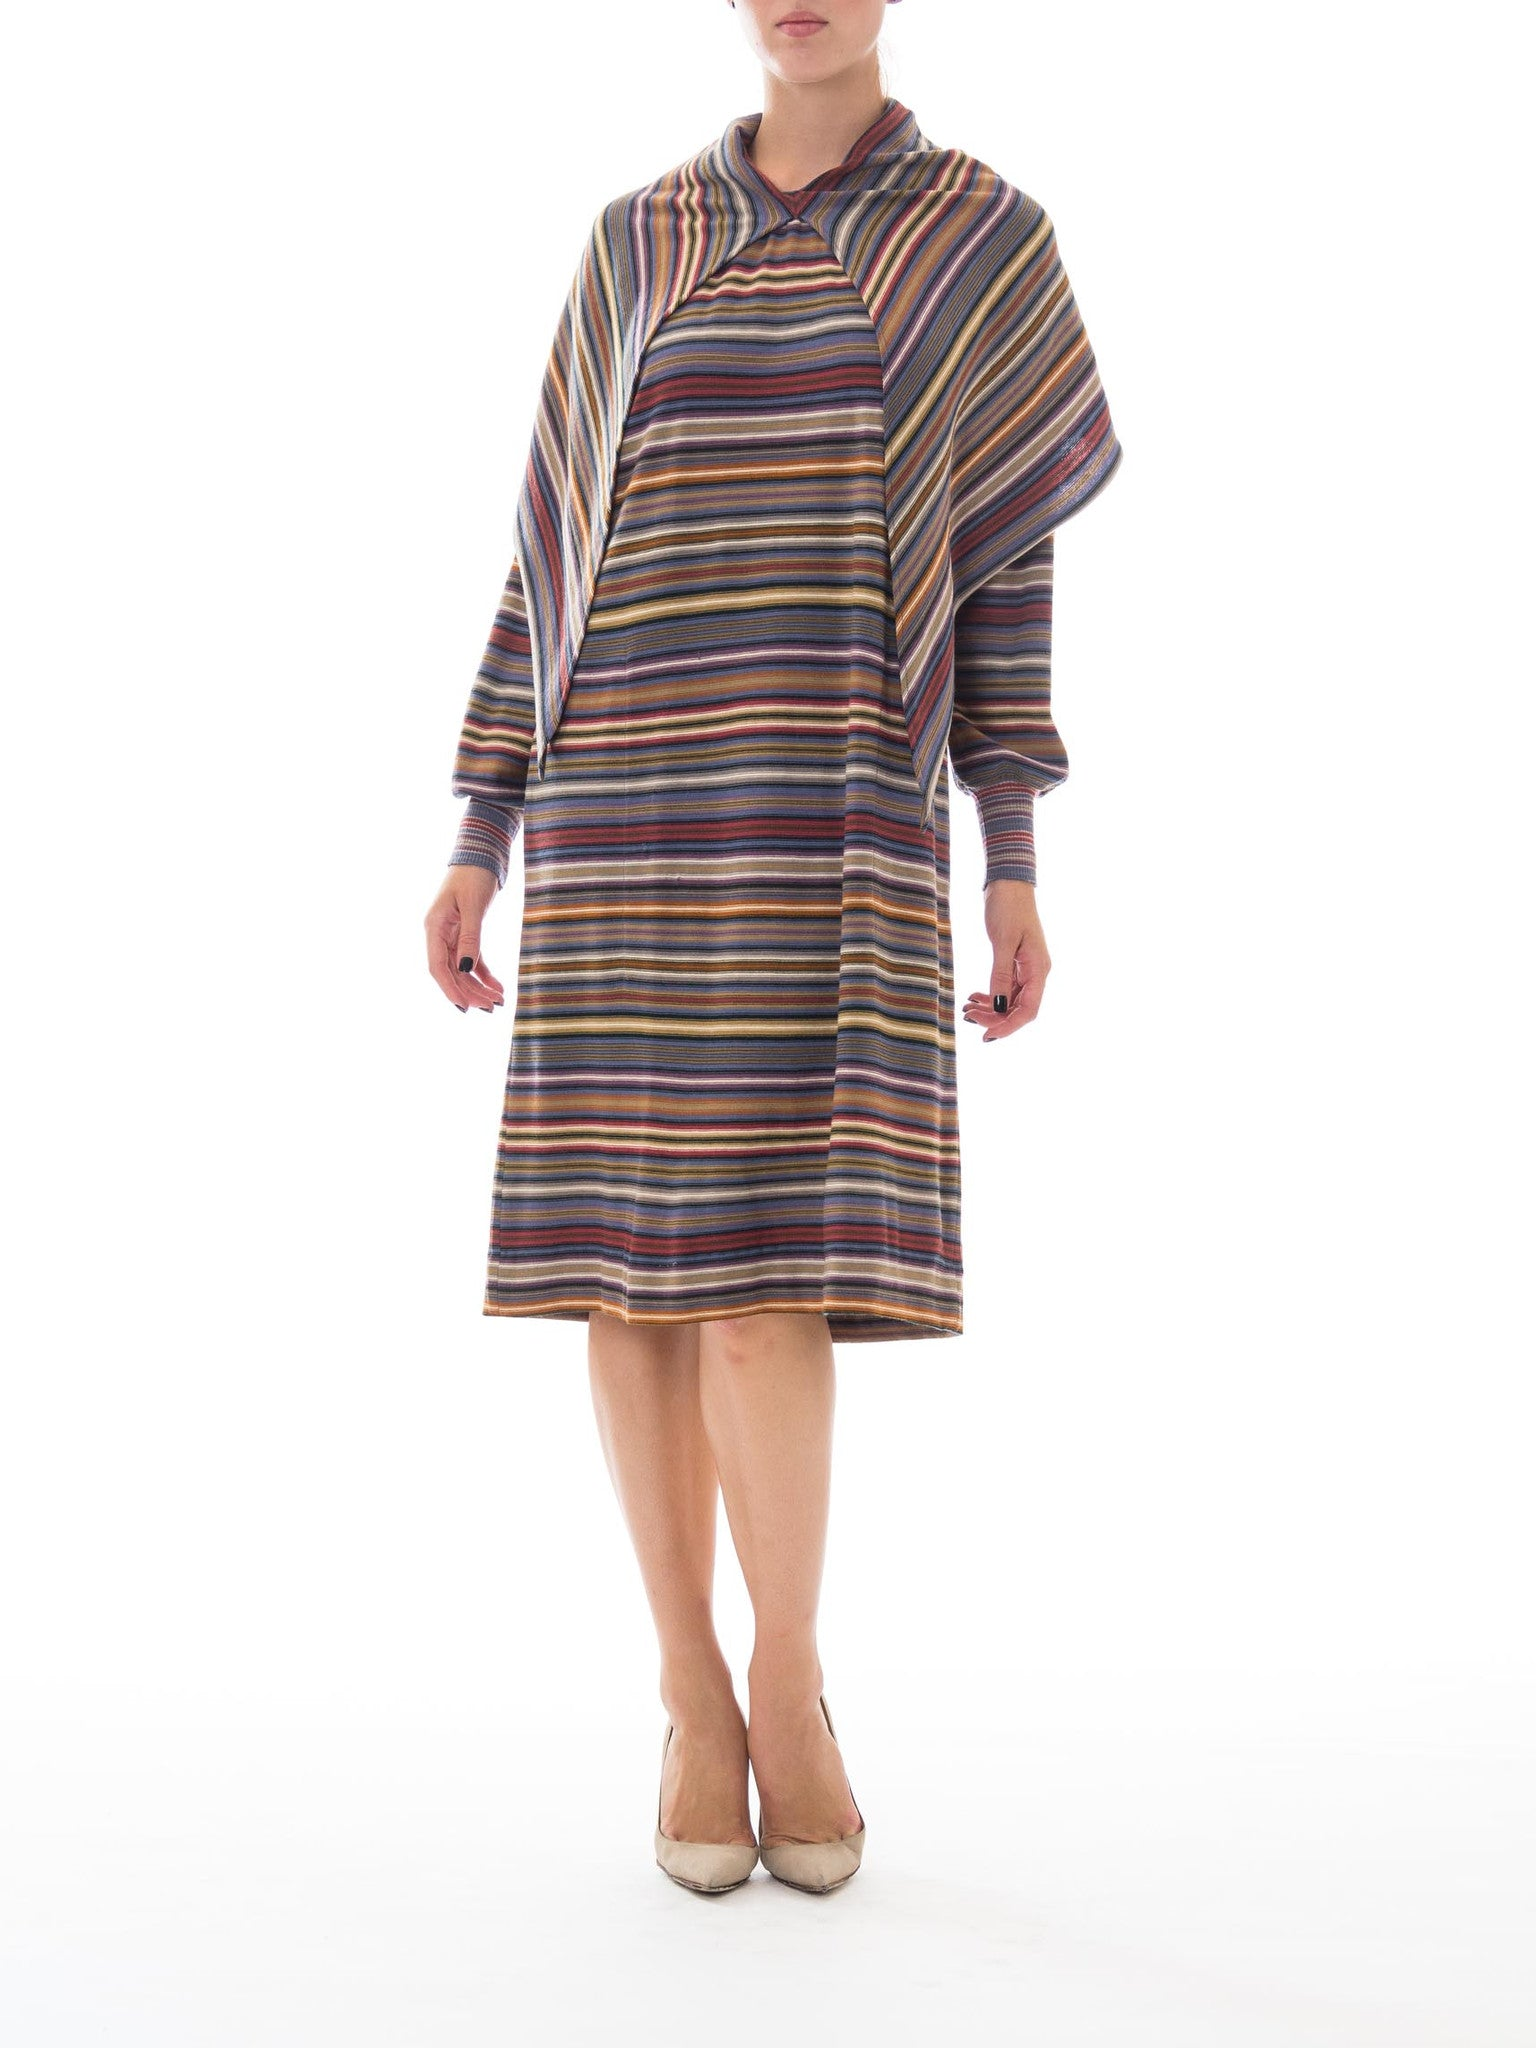 1970S MISSONI Striped Wool Knit Dress With Attached Scarf/Hood